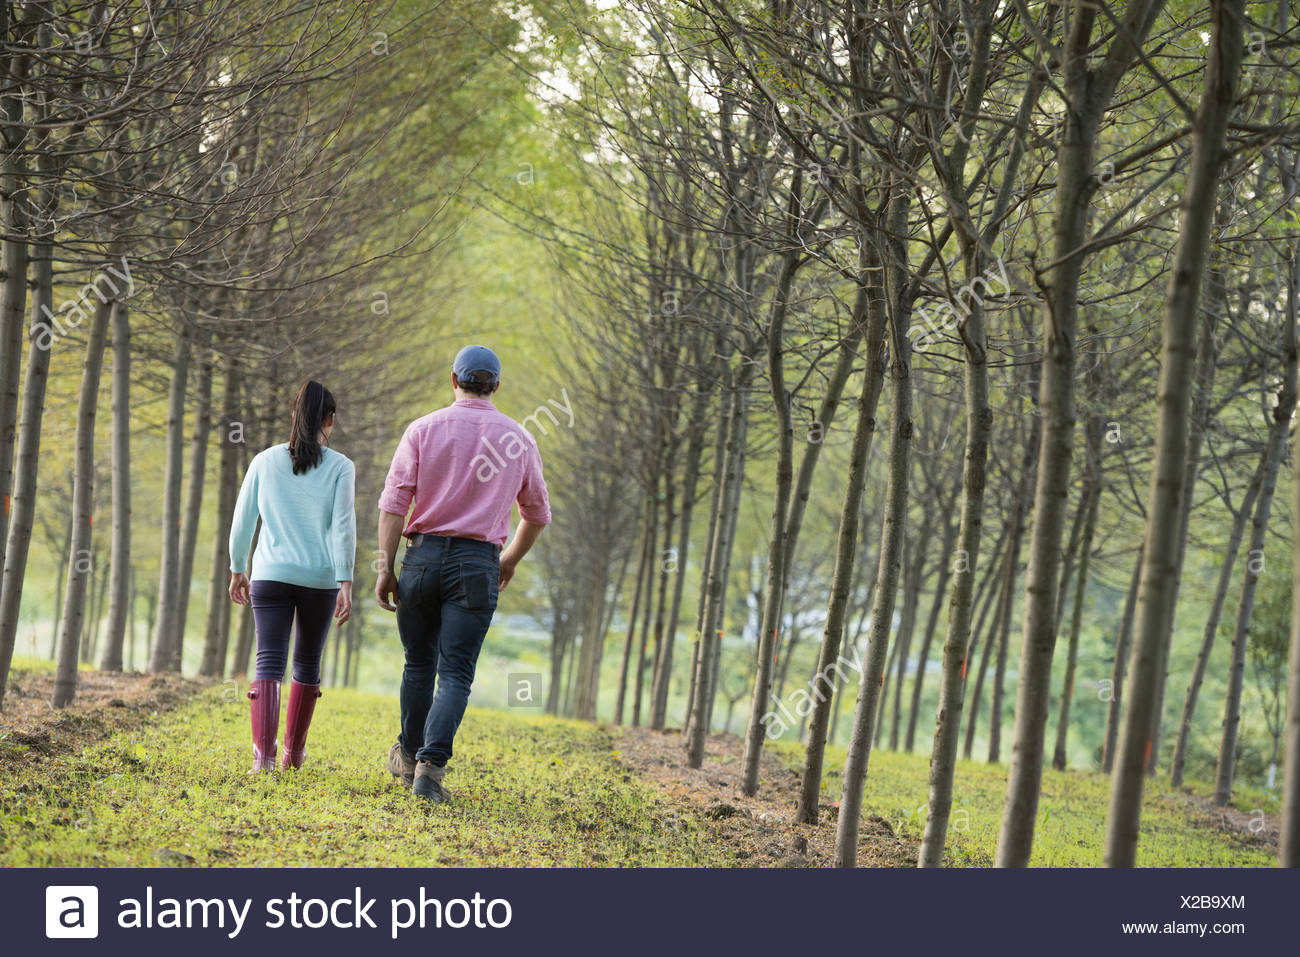 A couple walking between two rows of trees. - Stock Image